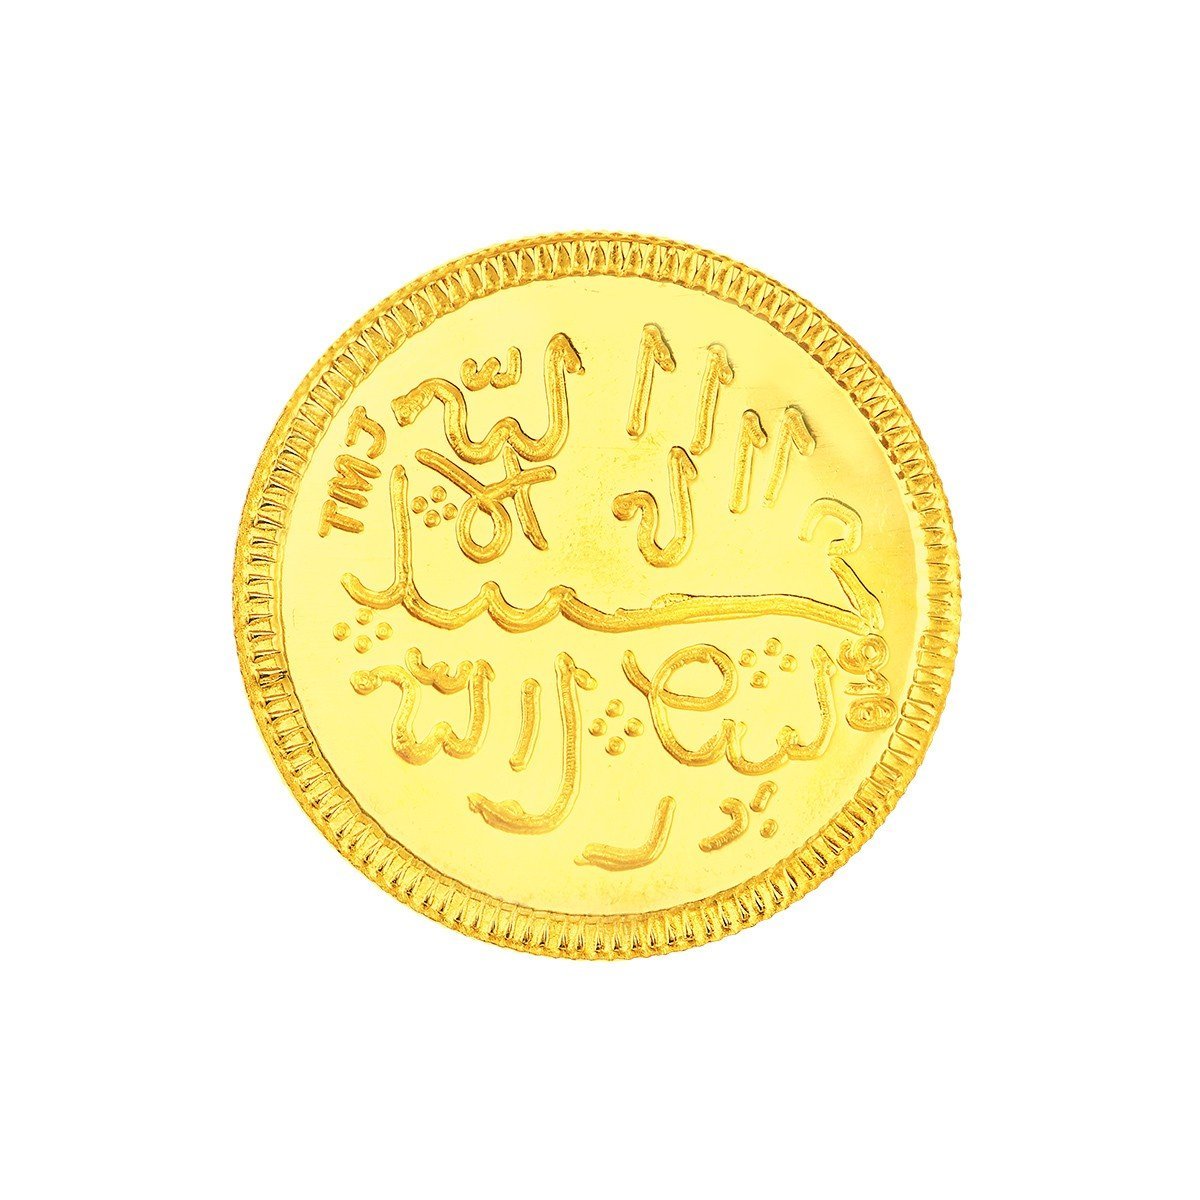 4 Grams 22 Carat Crescent Moon Gold Coin